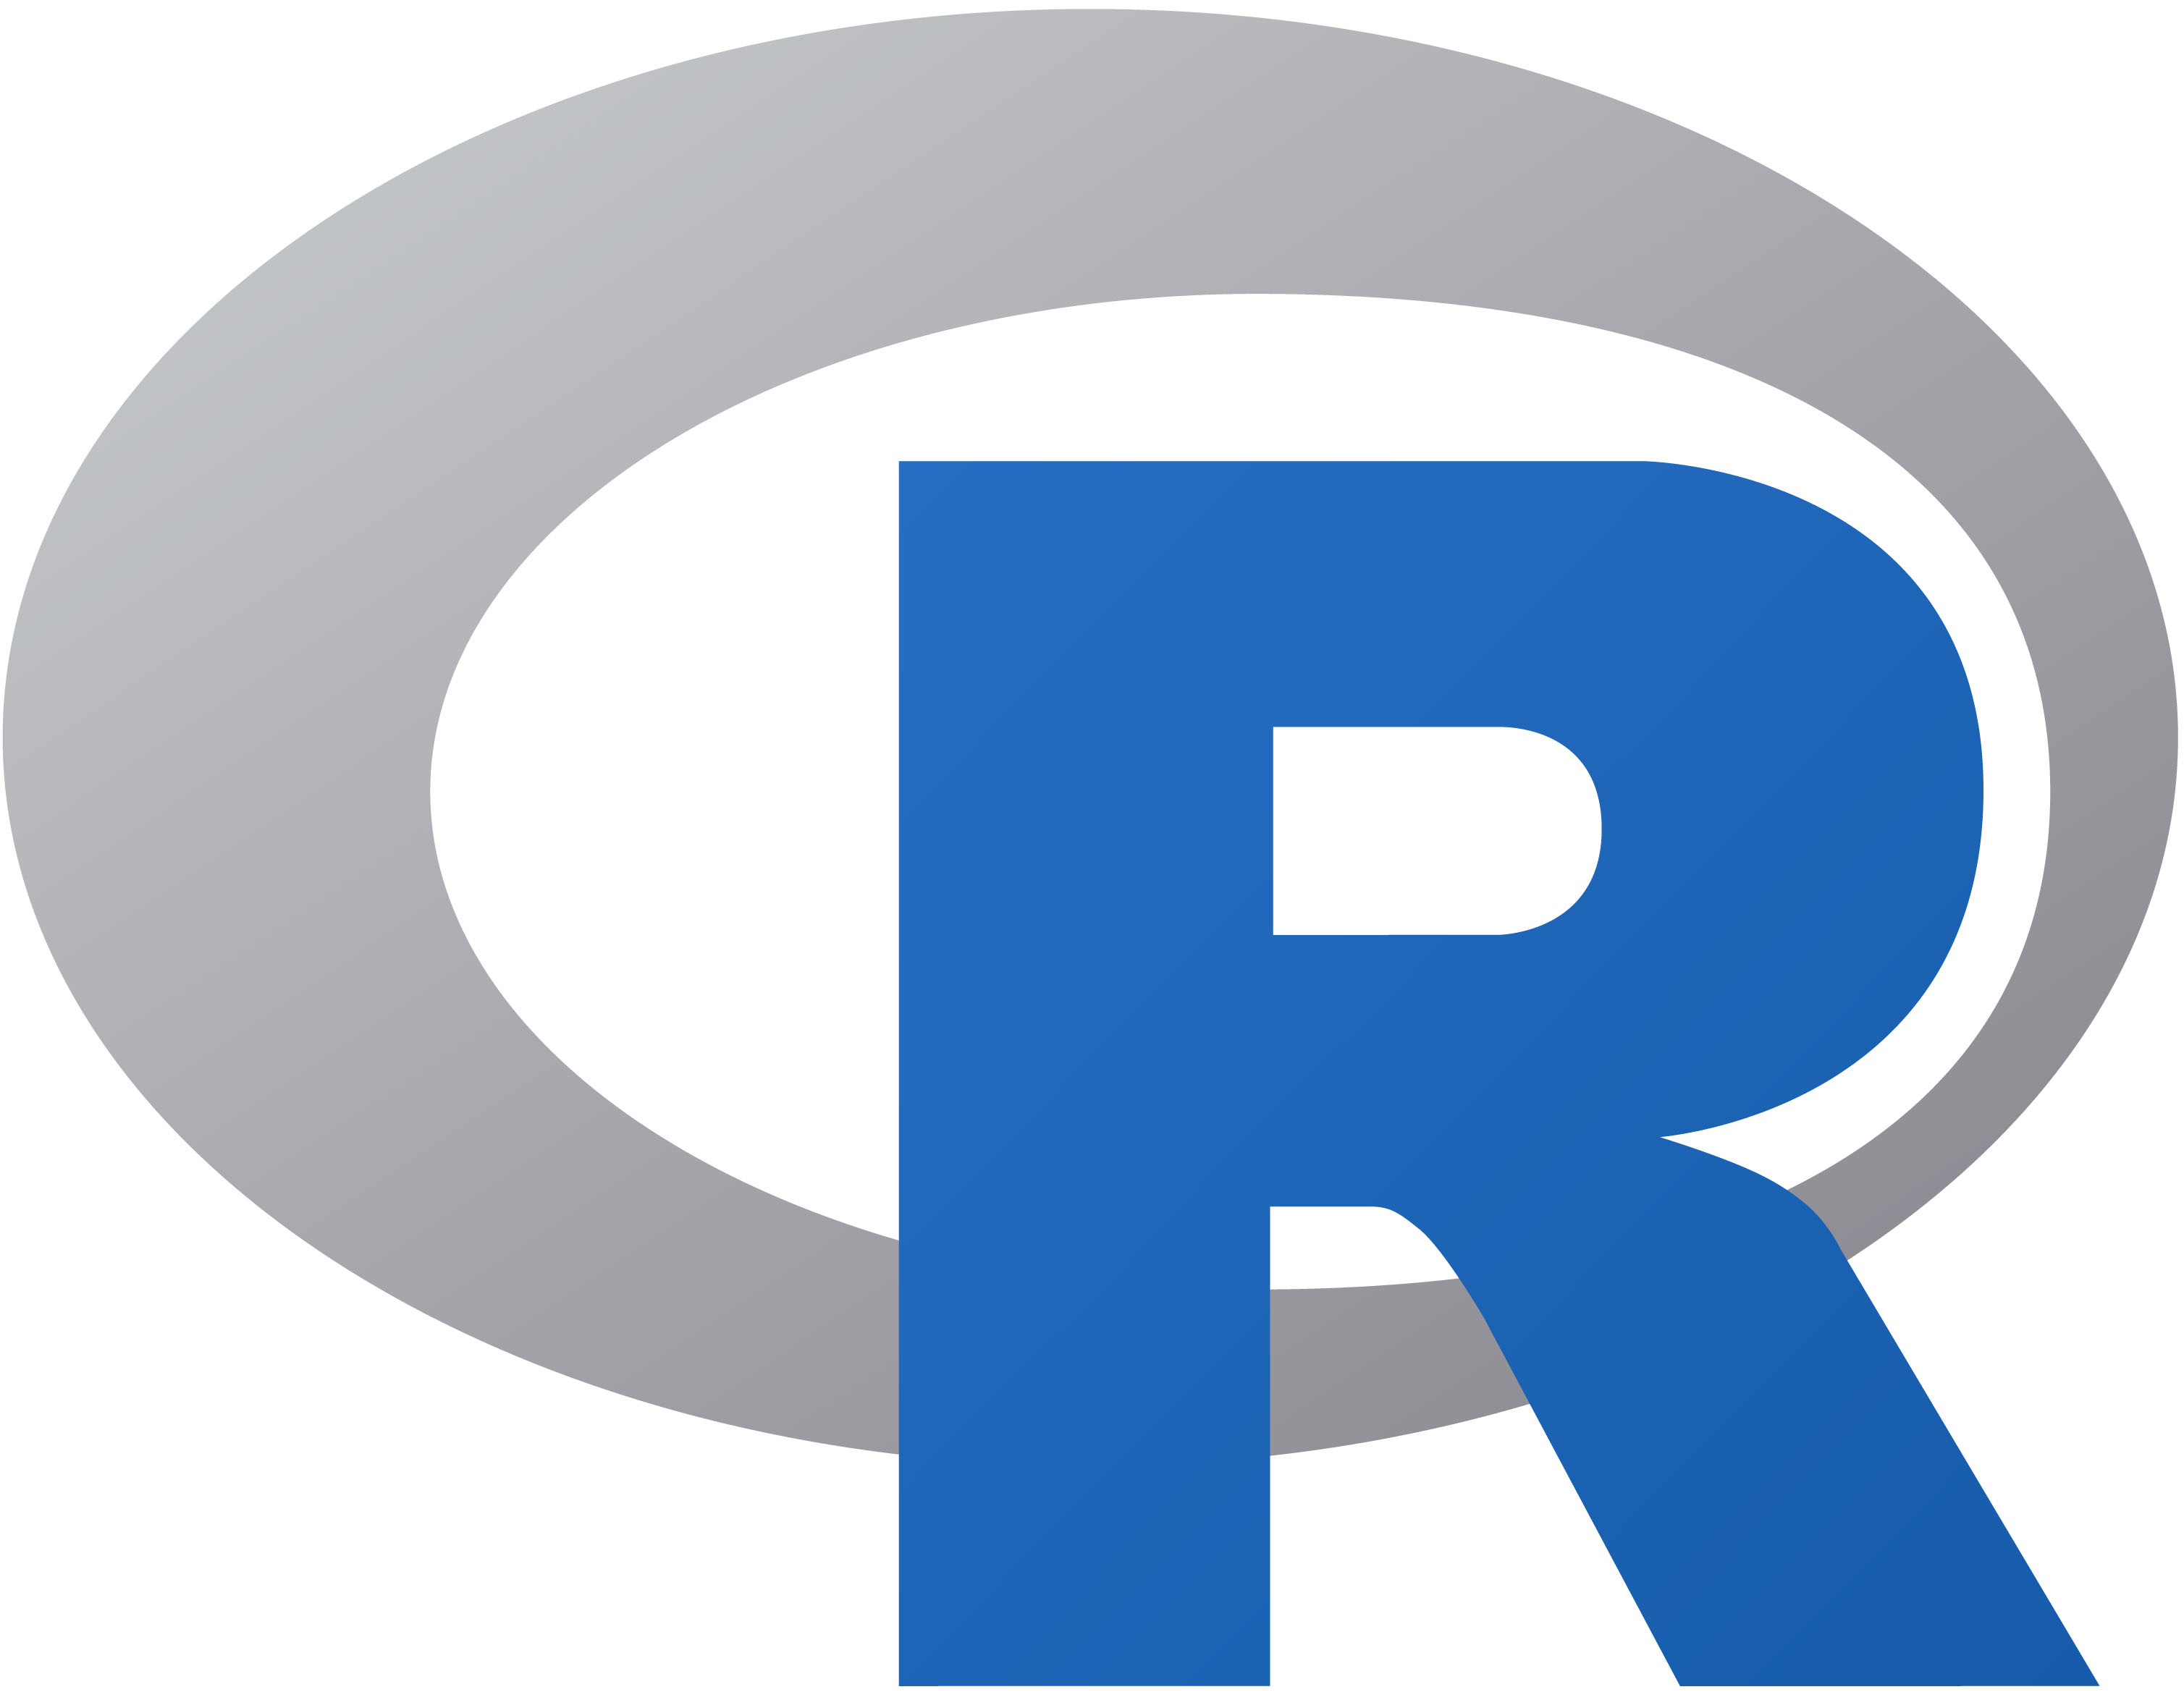 R Workshop Series: Introduction to R